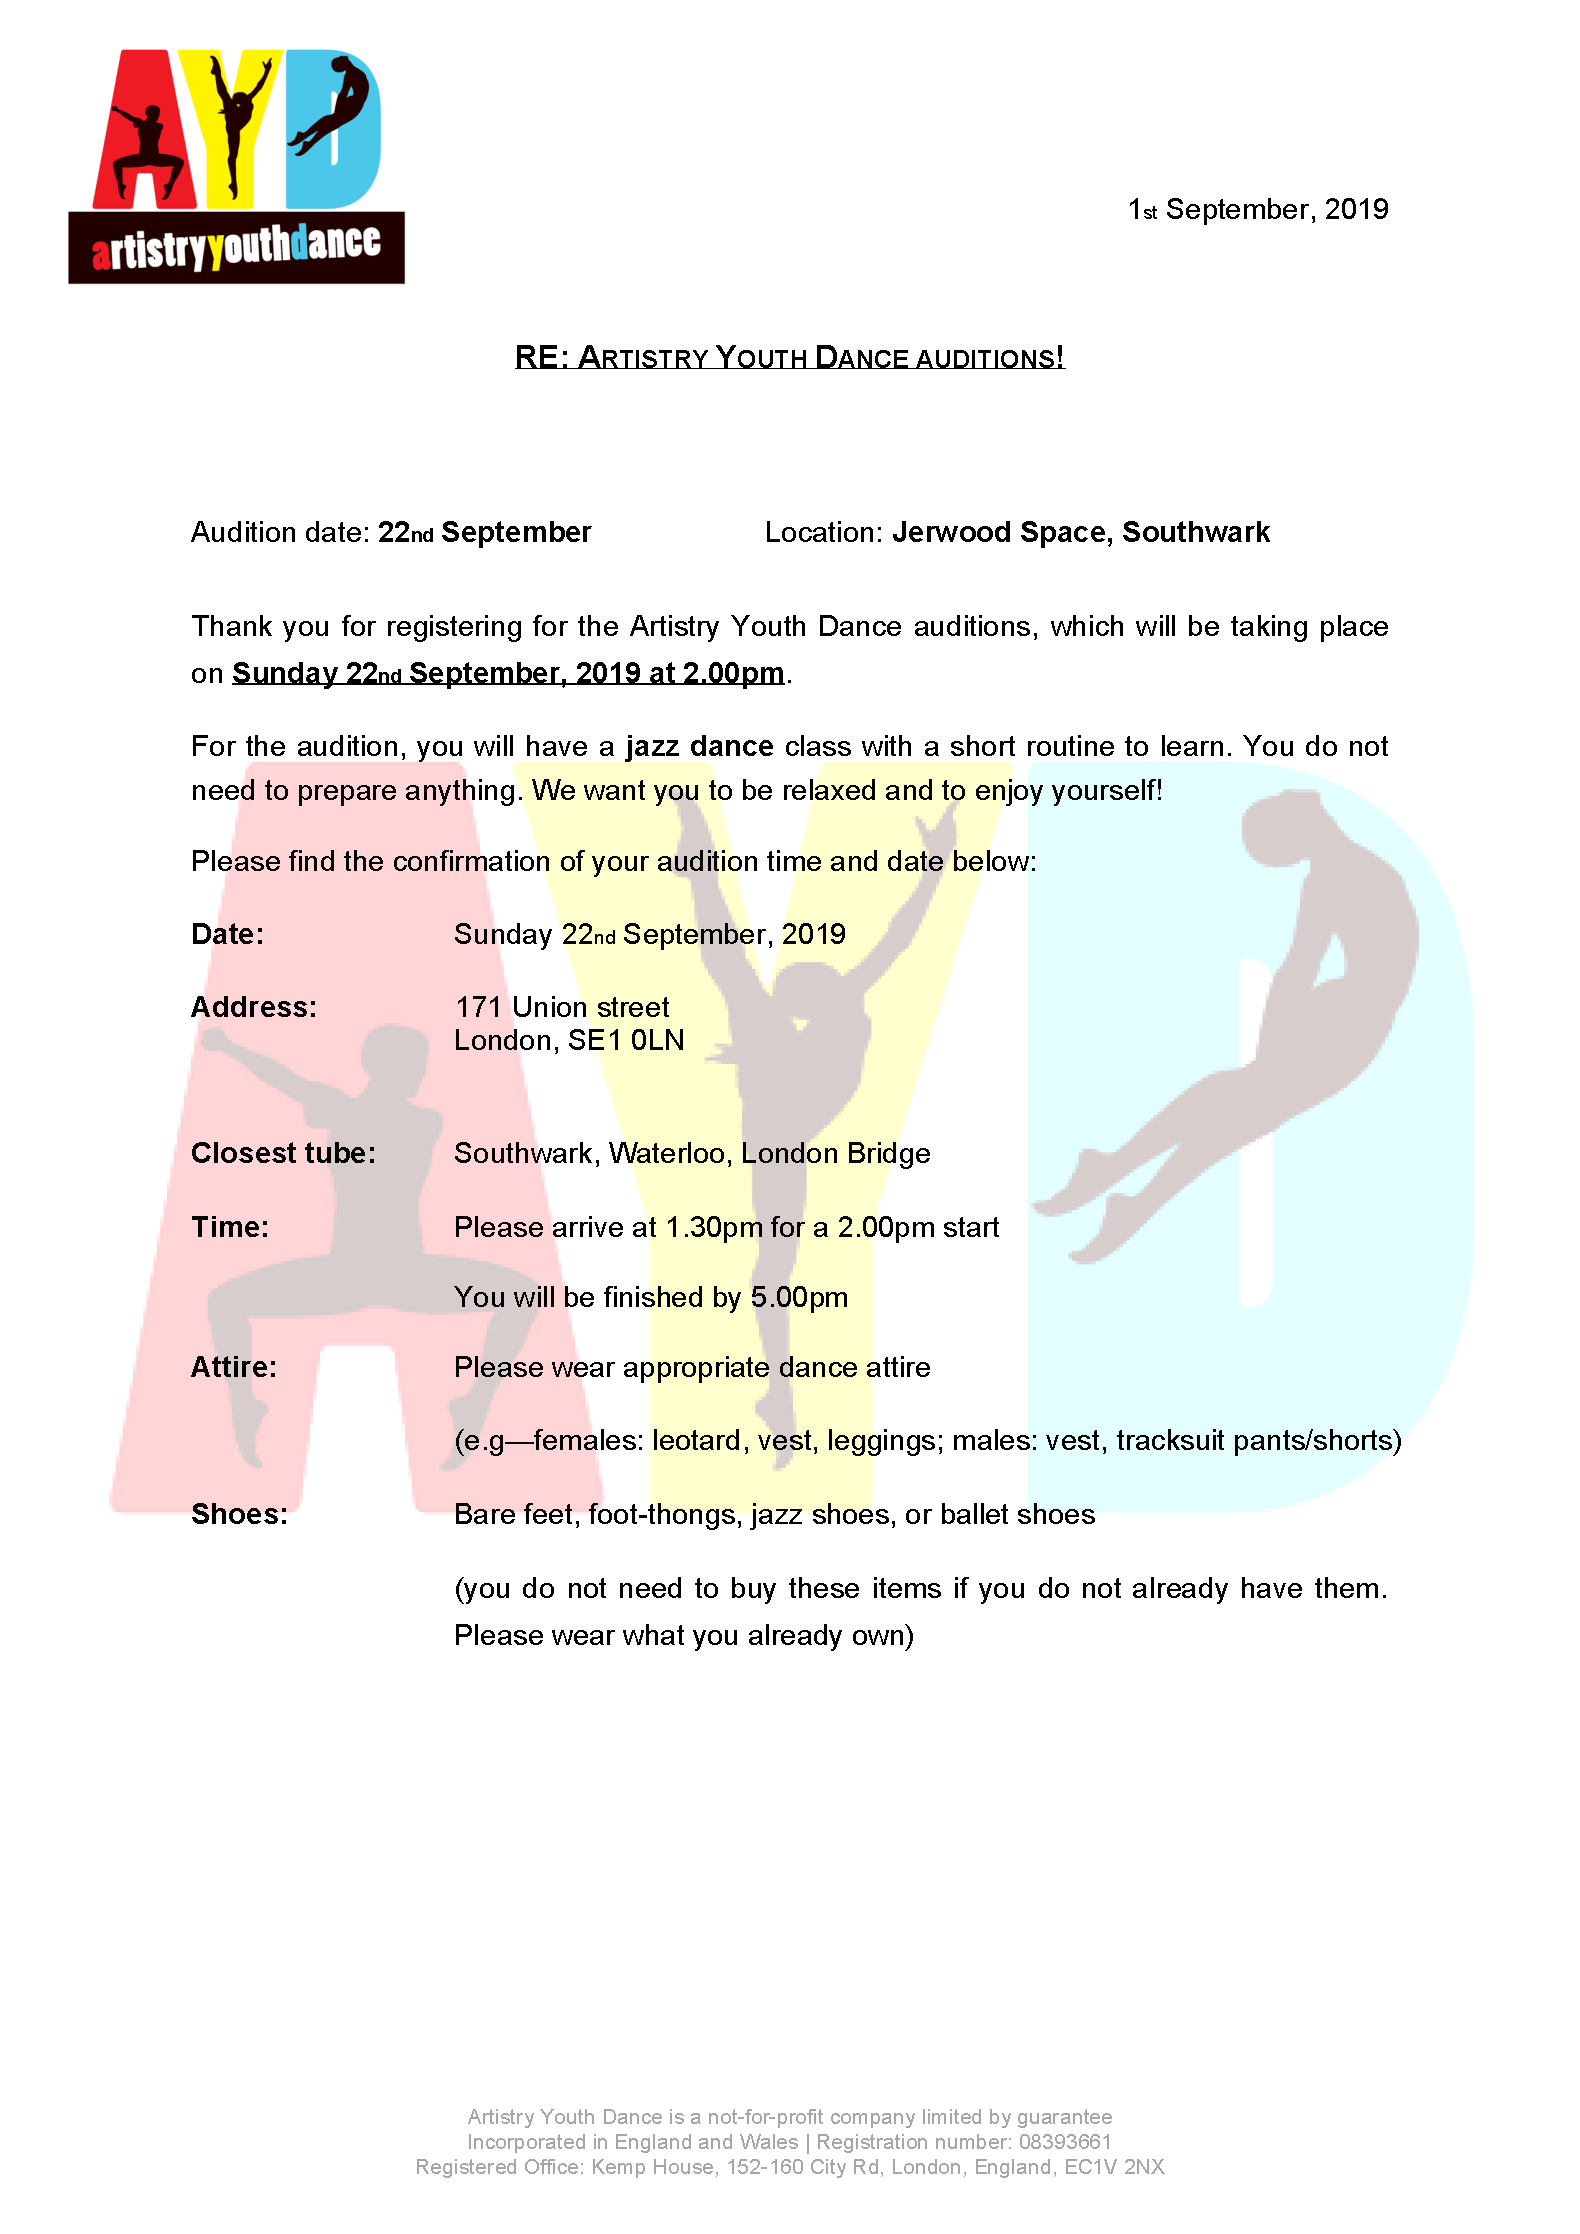 Artistry Youth Dance Audition Information - Sept 2019_Page_1.png